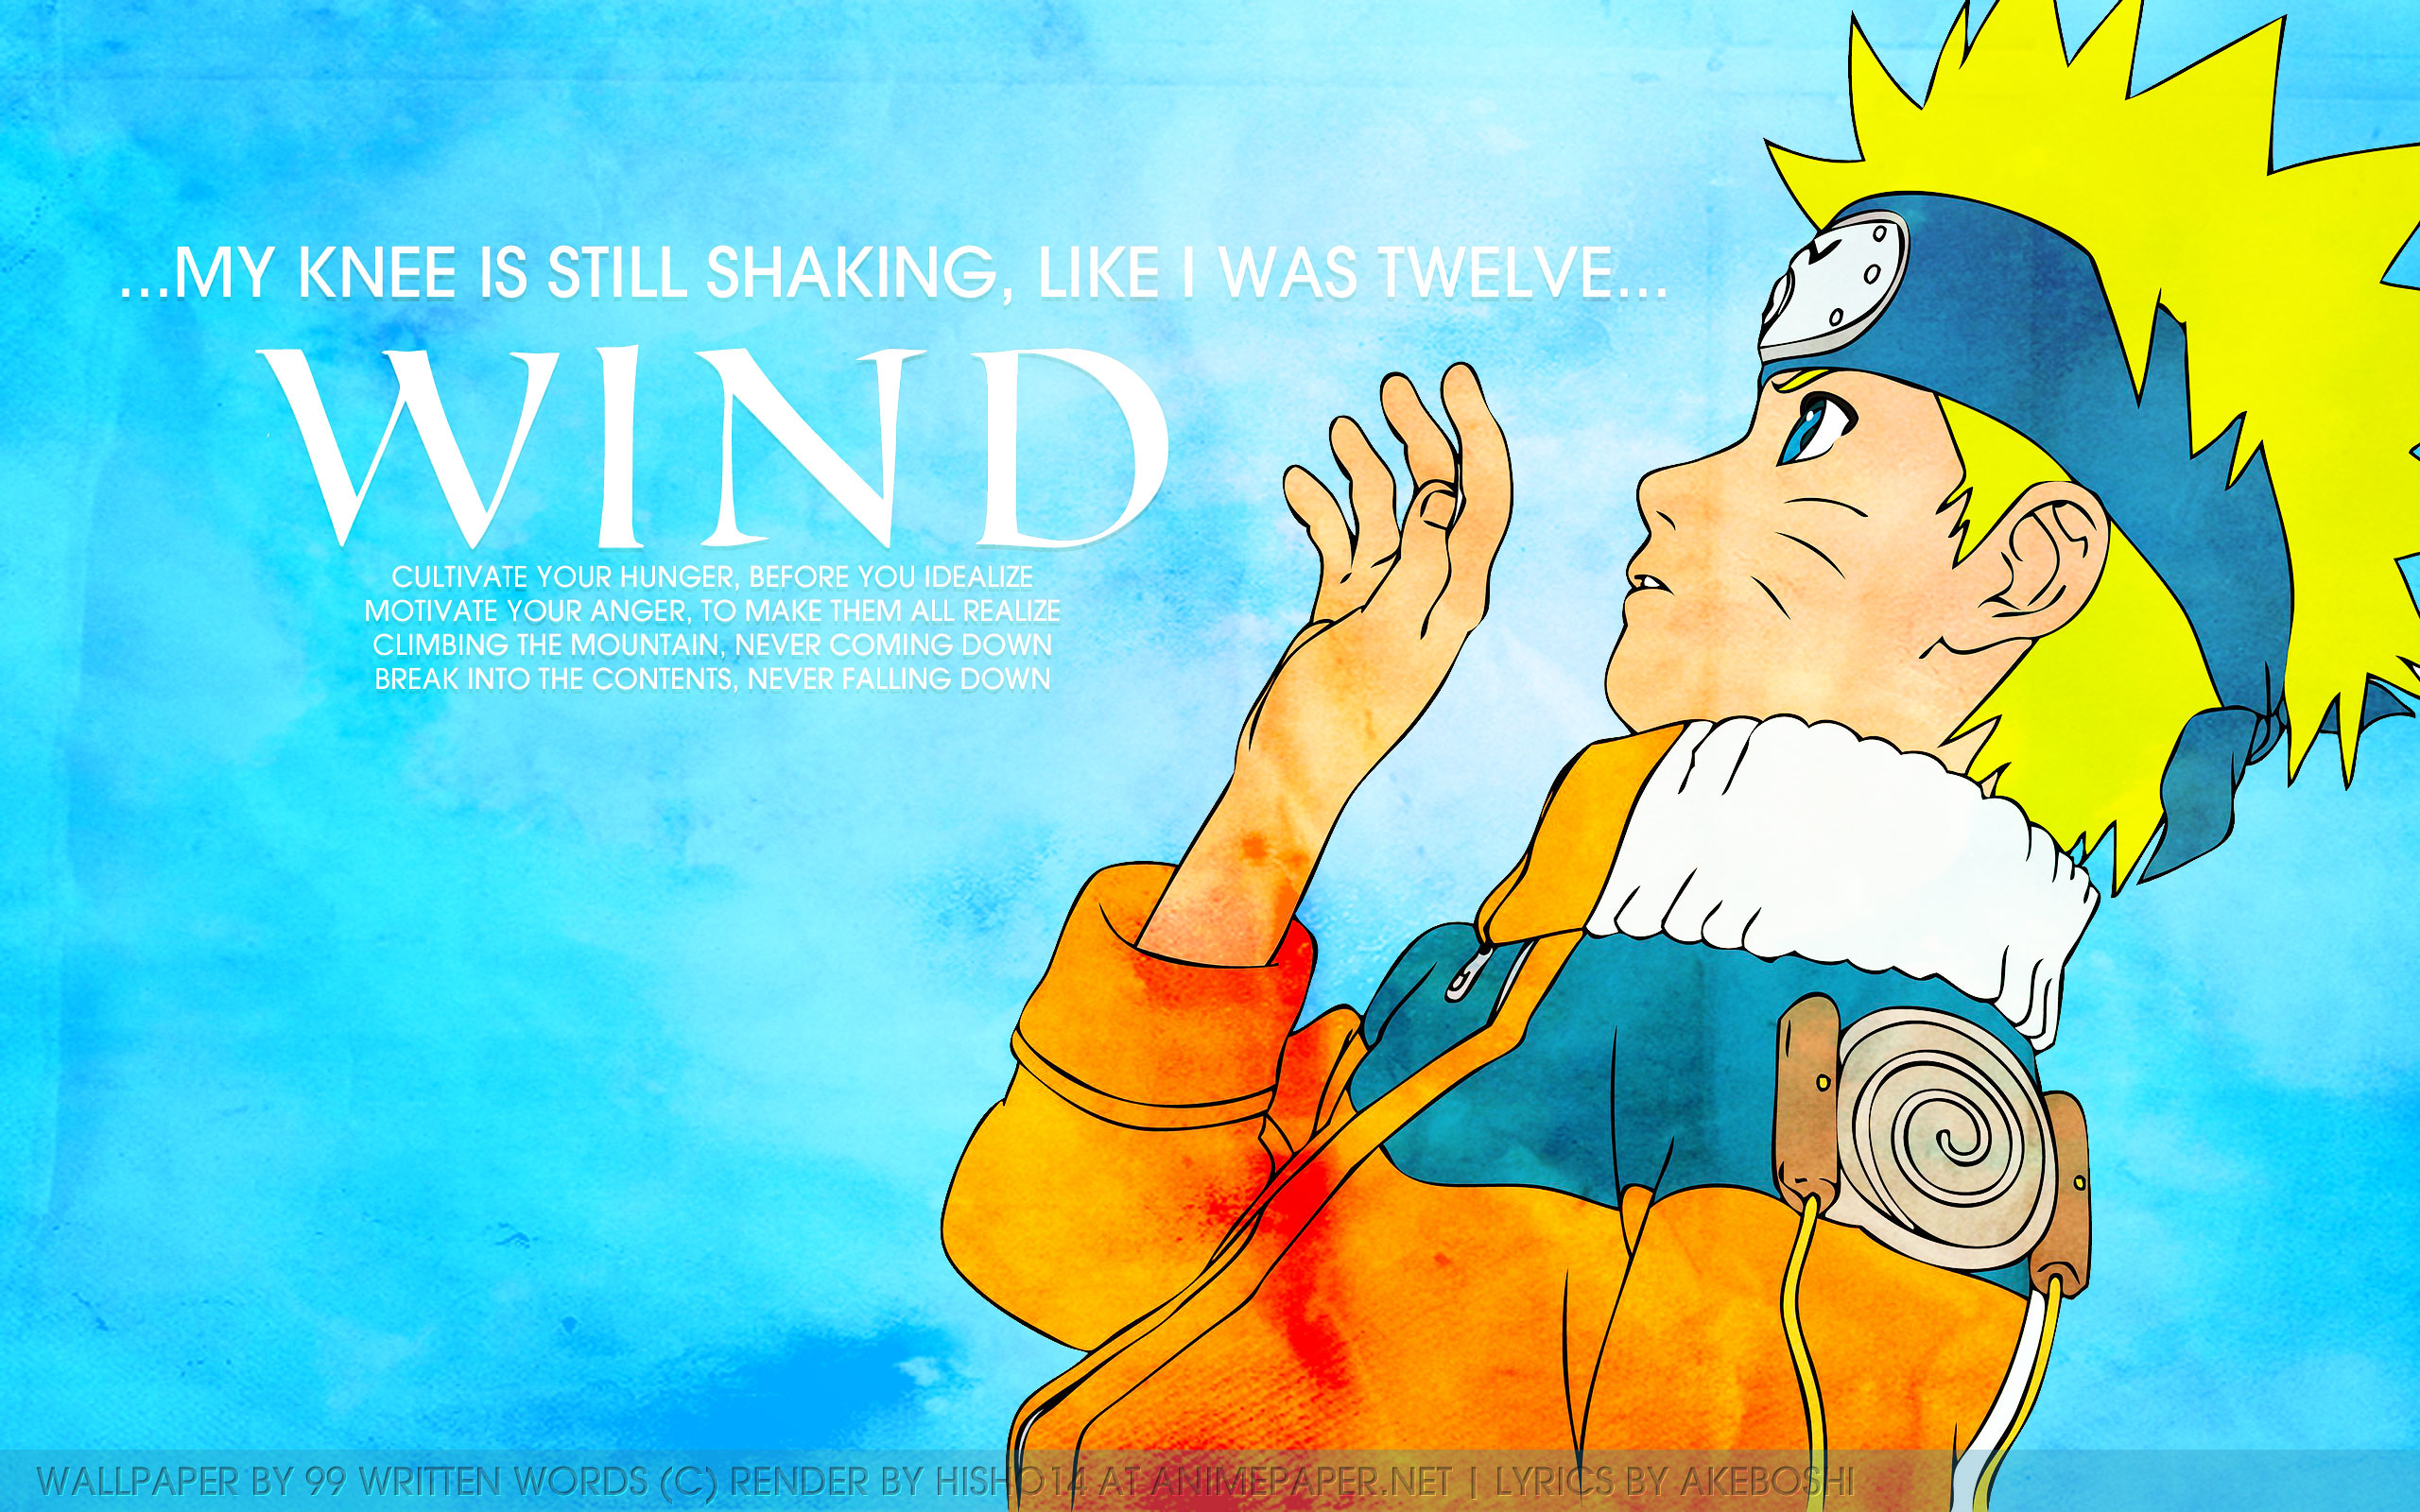 3840x1080 Hd Wallpapers Sad Quote Naruto Wind Full Hd Wallpaper And Background 2560x1600